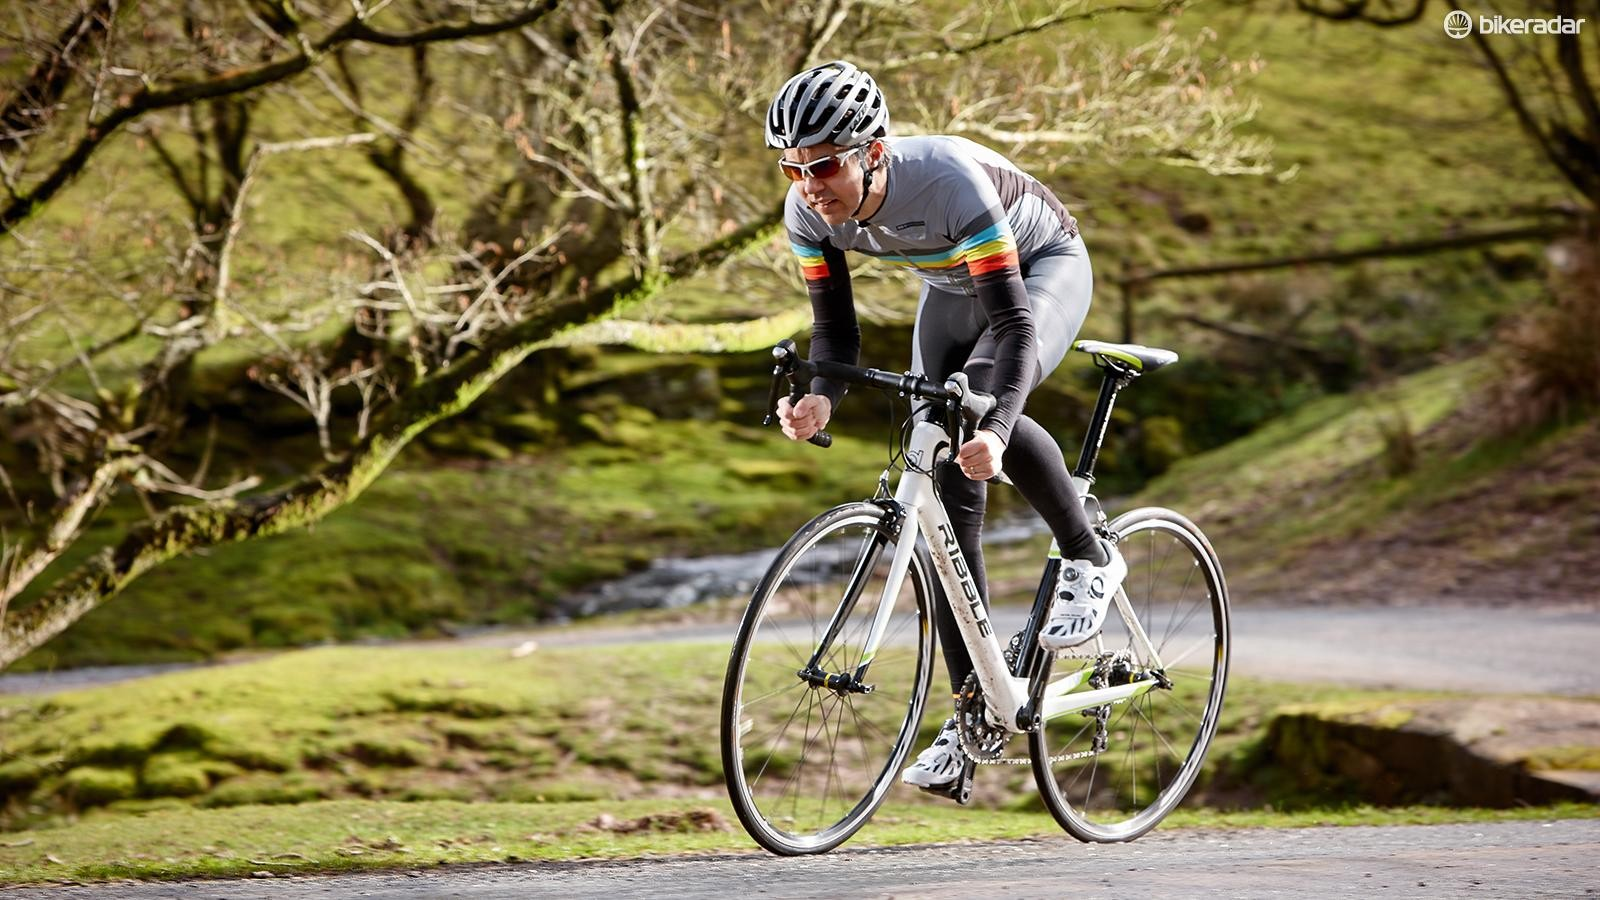 If you're new to road bikes then the Evo Pro will feel light, lively and exciting